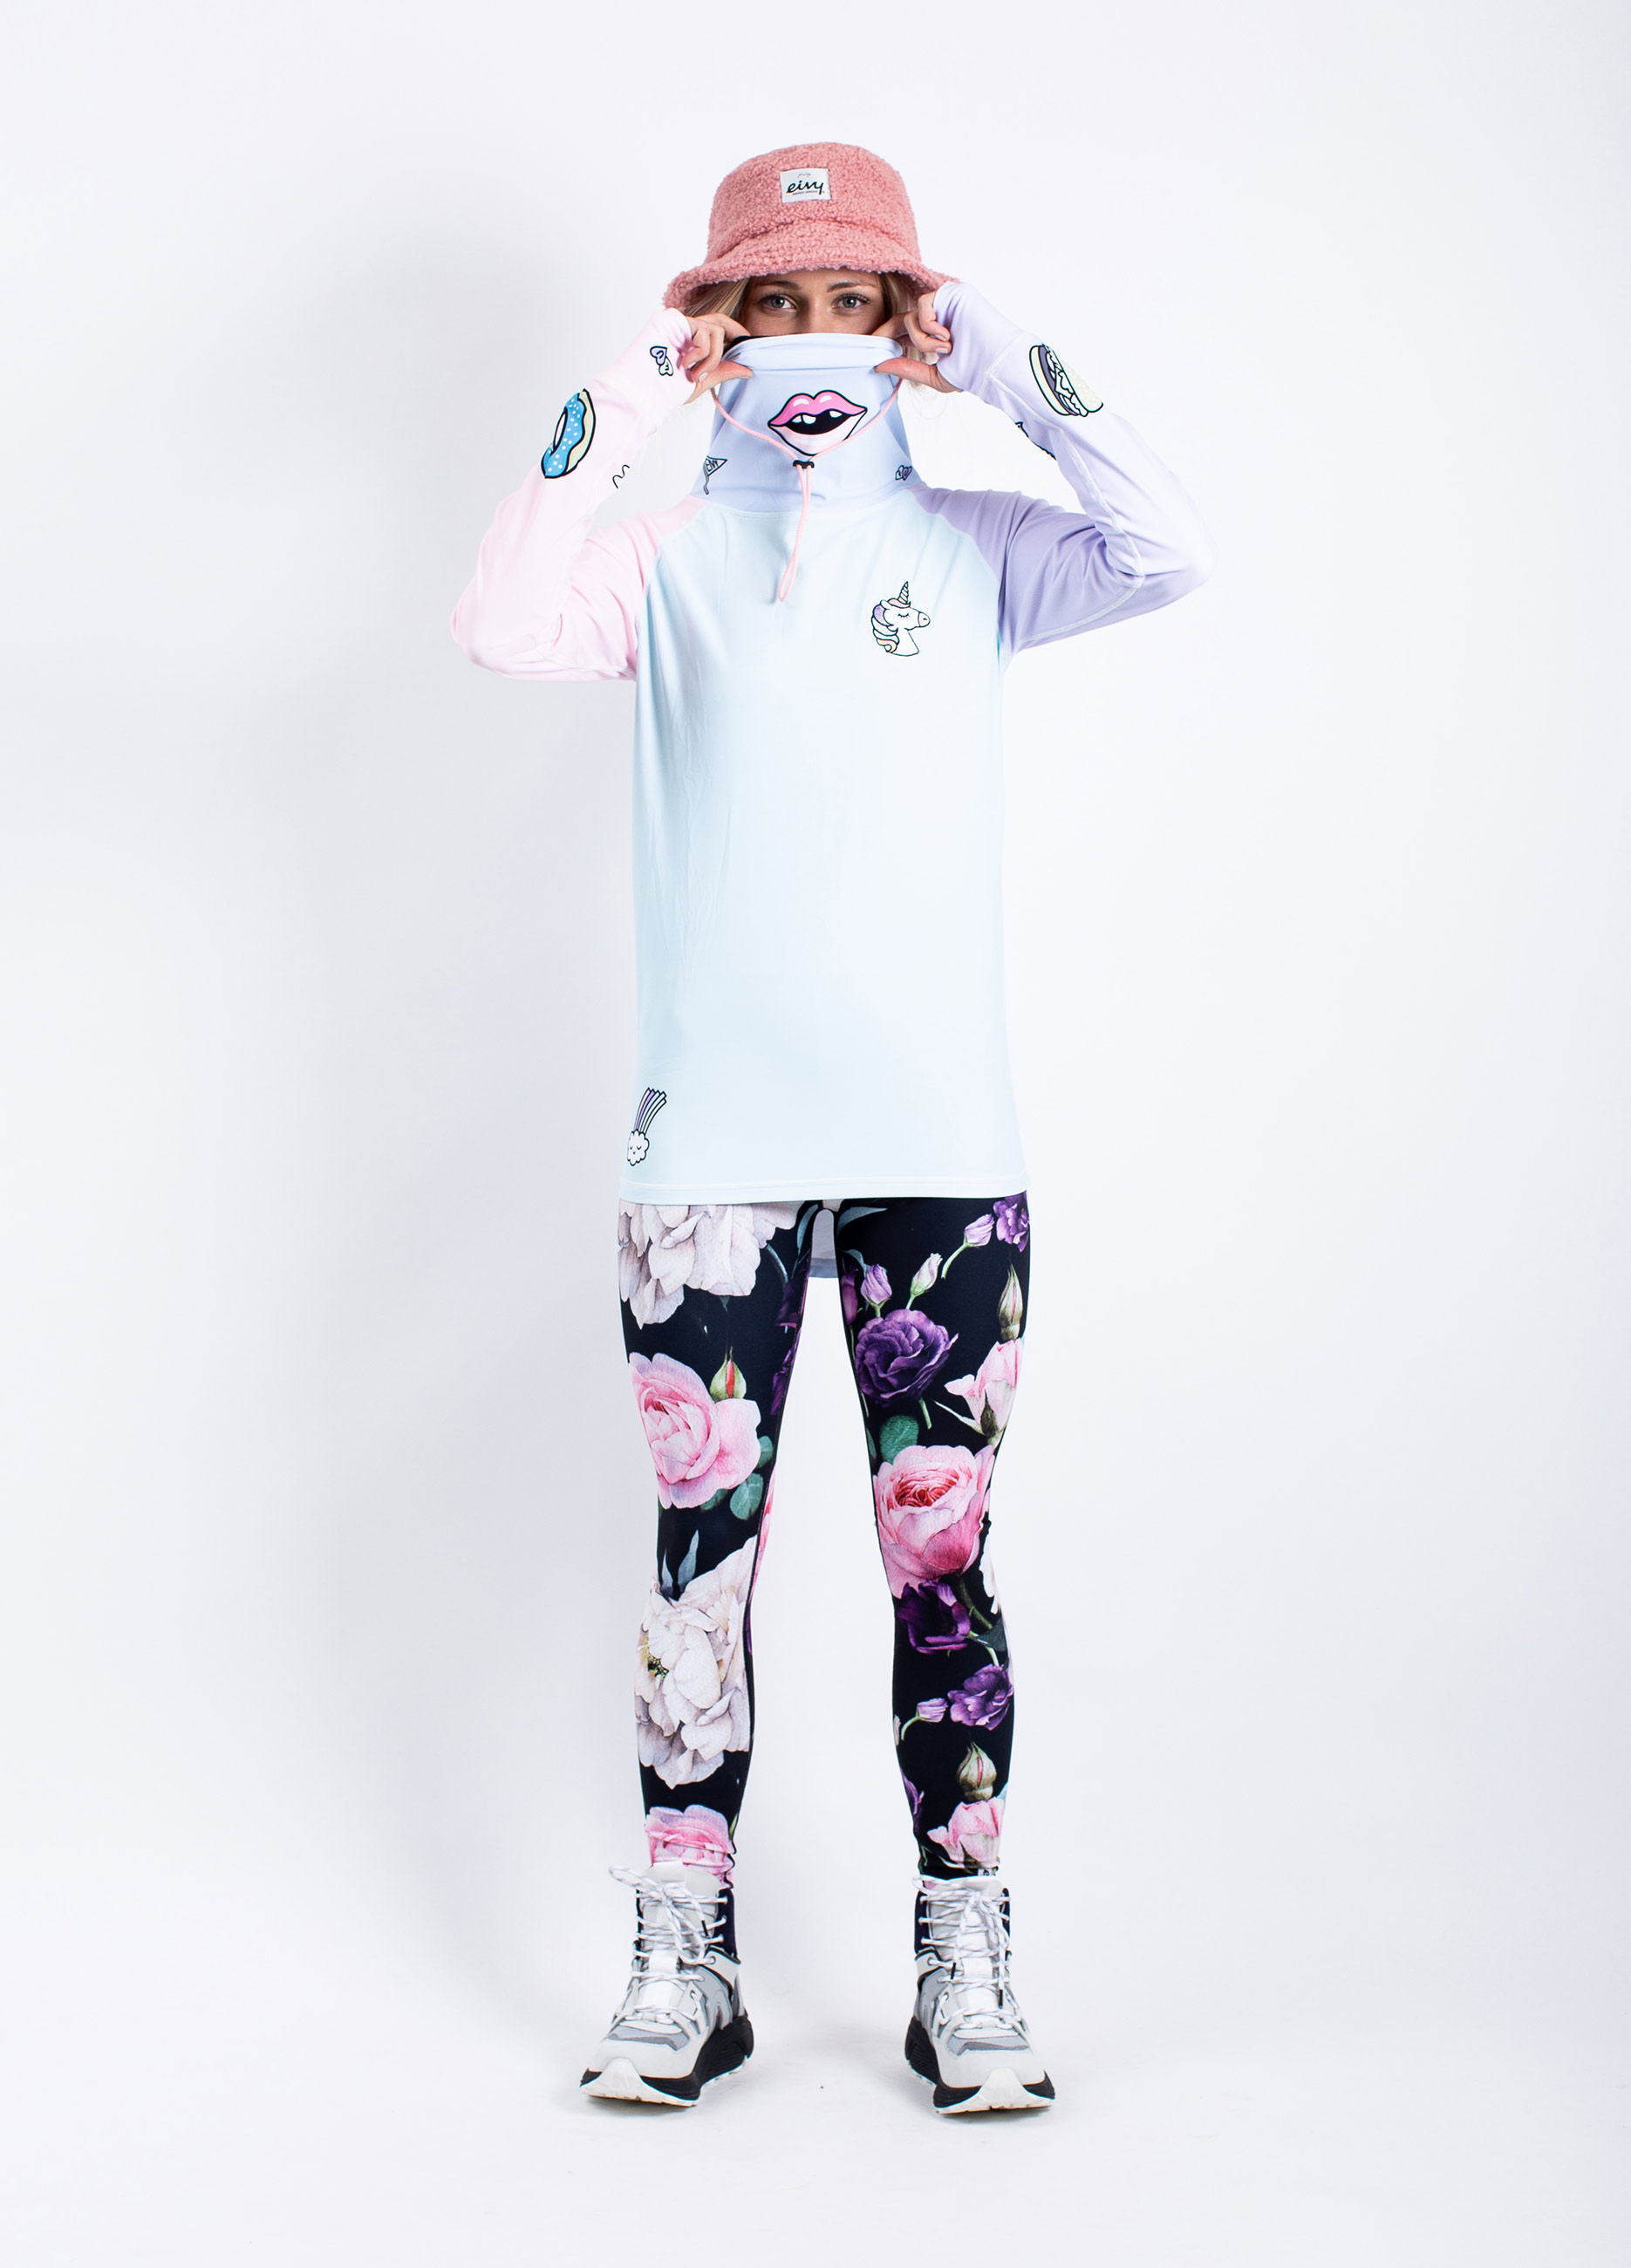 slider-image-https://www.eivyclothing.com/image/3679/Mix_and_match_4.jpg